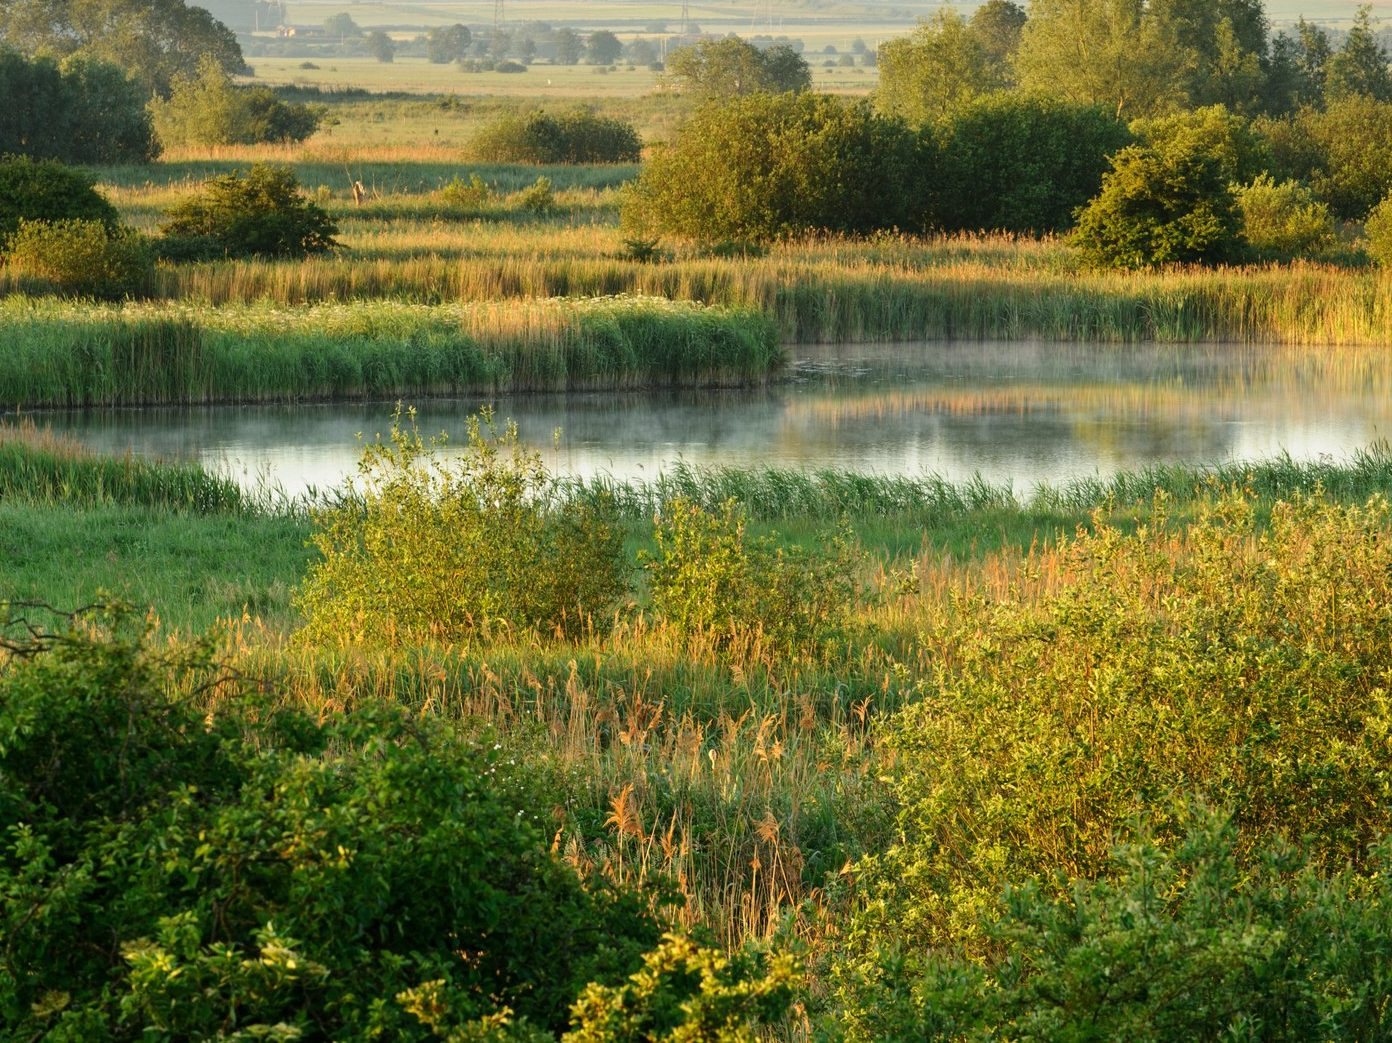 Wicken Fen Cambs - Terry Whittaker 2020VISION